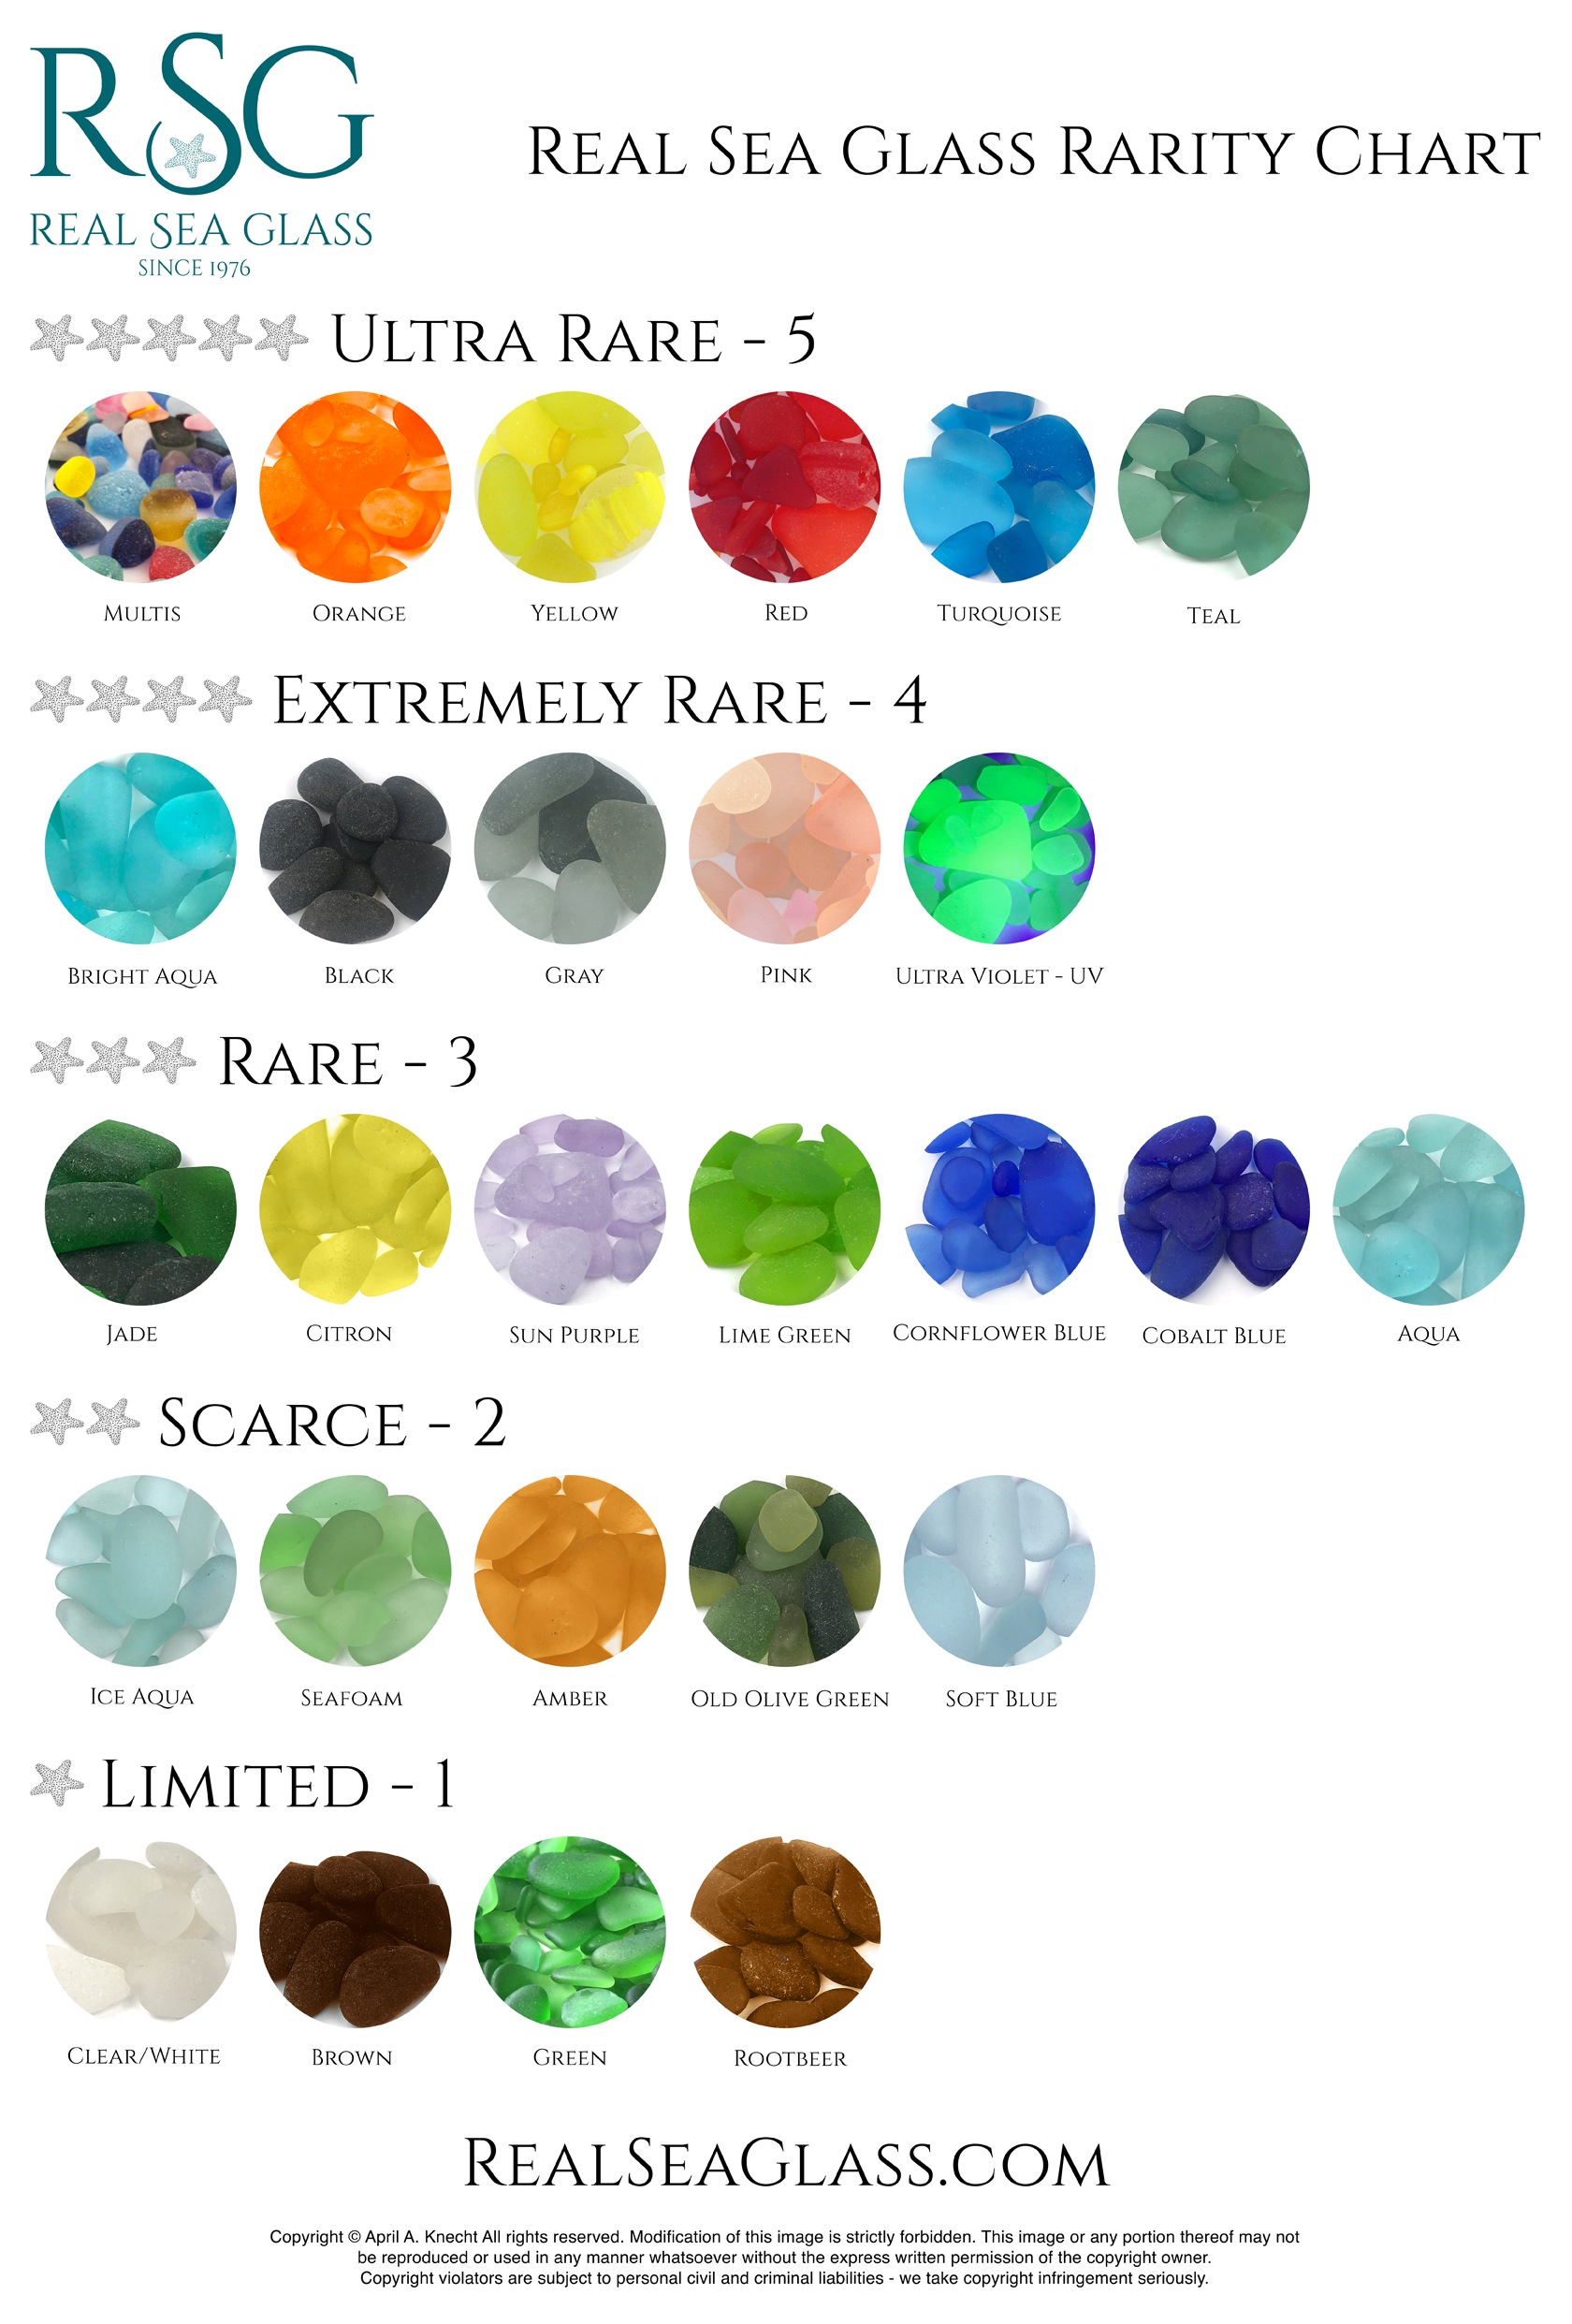 Real Sea Glass Rarity Chart